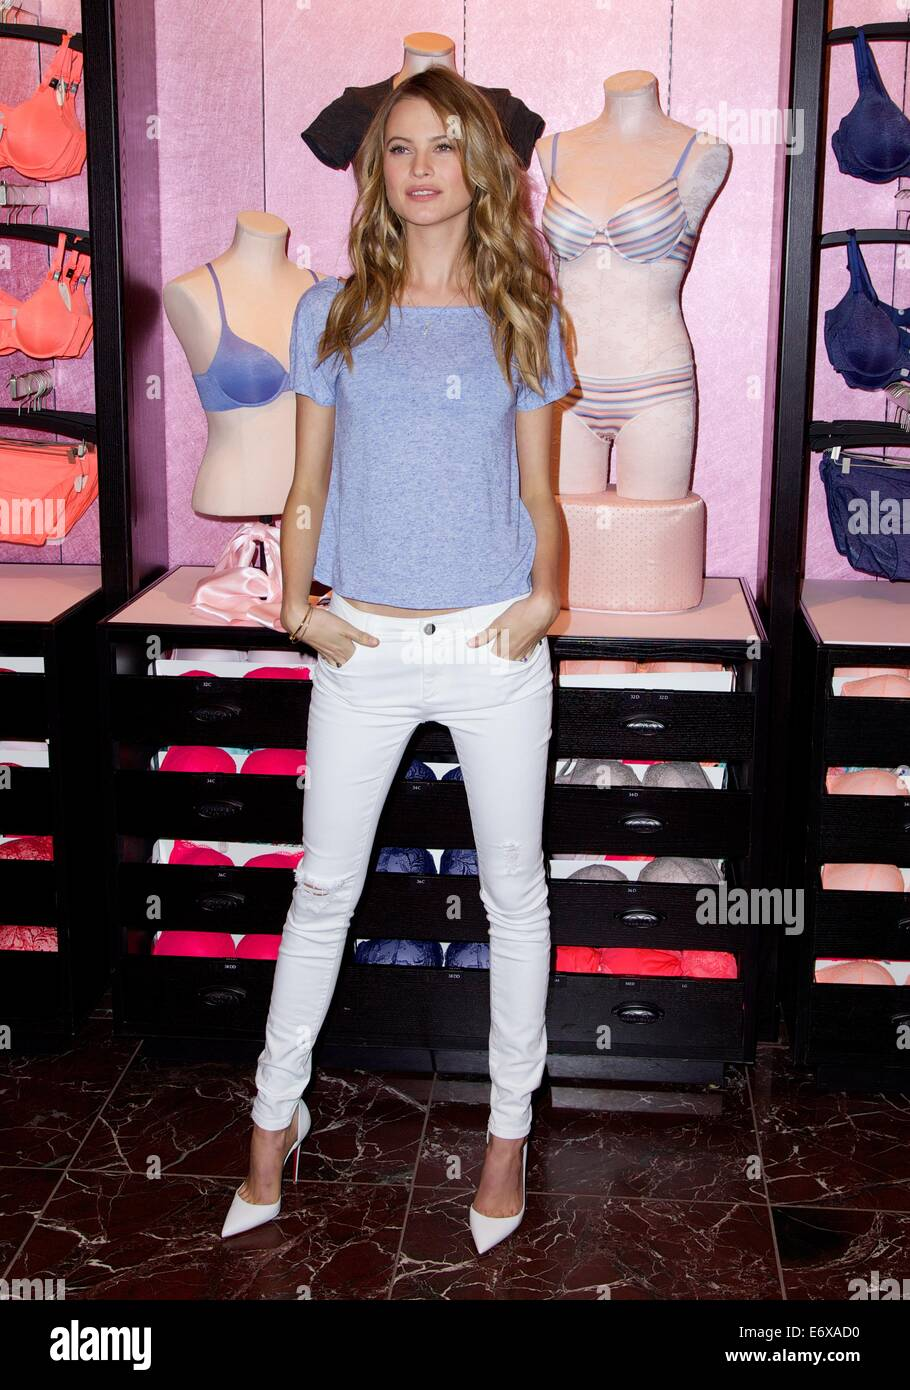 4ad7af4997326 Victoria's Secret and Behati Prinsloo introduce this spring's ...